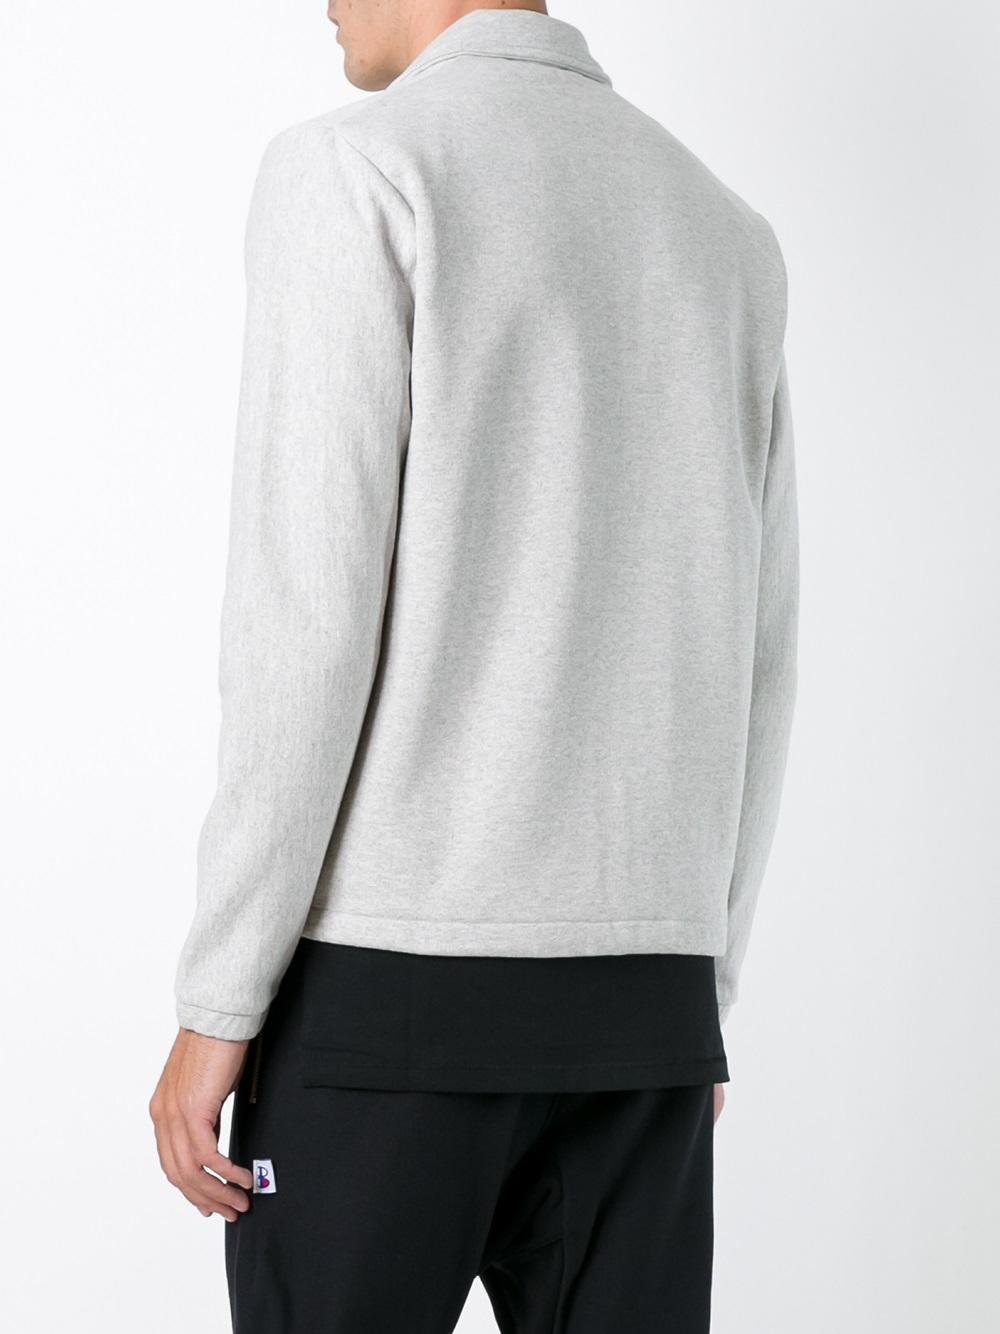 Champion Cotton X Beams Sport Jacket In Grey Gray For